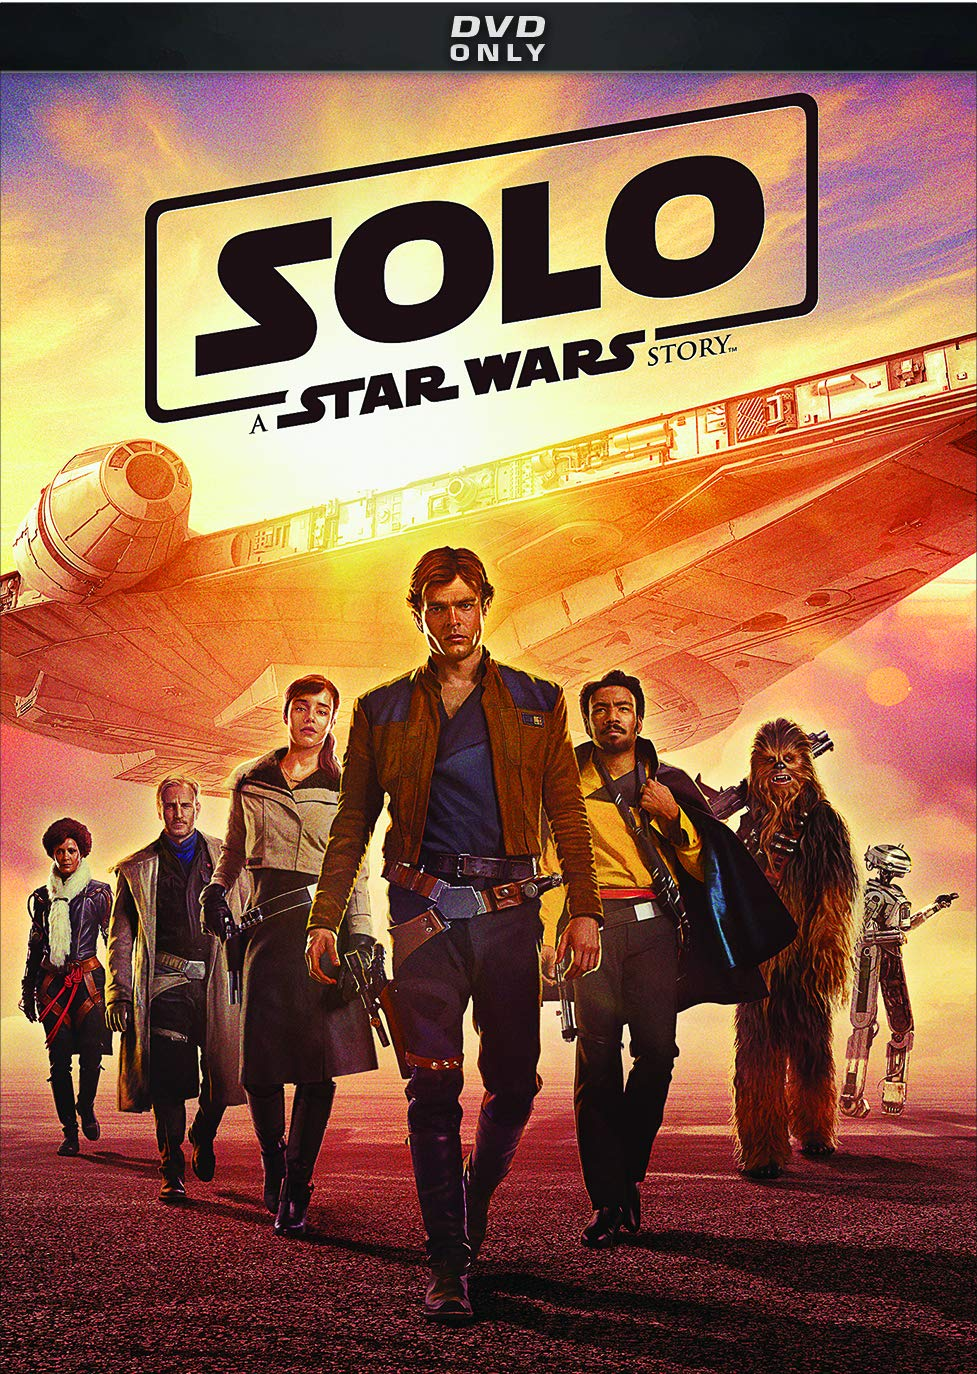 Solo: A Star Wars Story DVD Cover-Lucasfilm Ltd